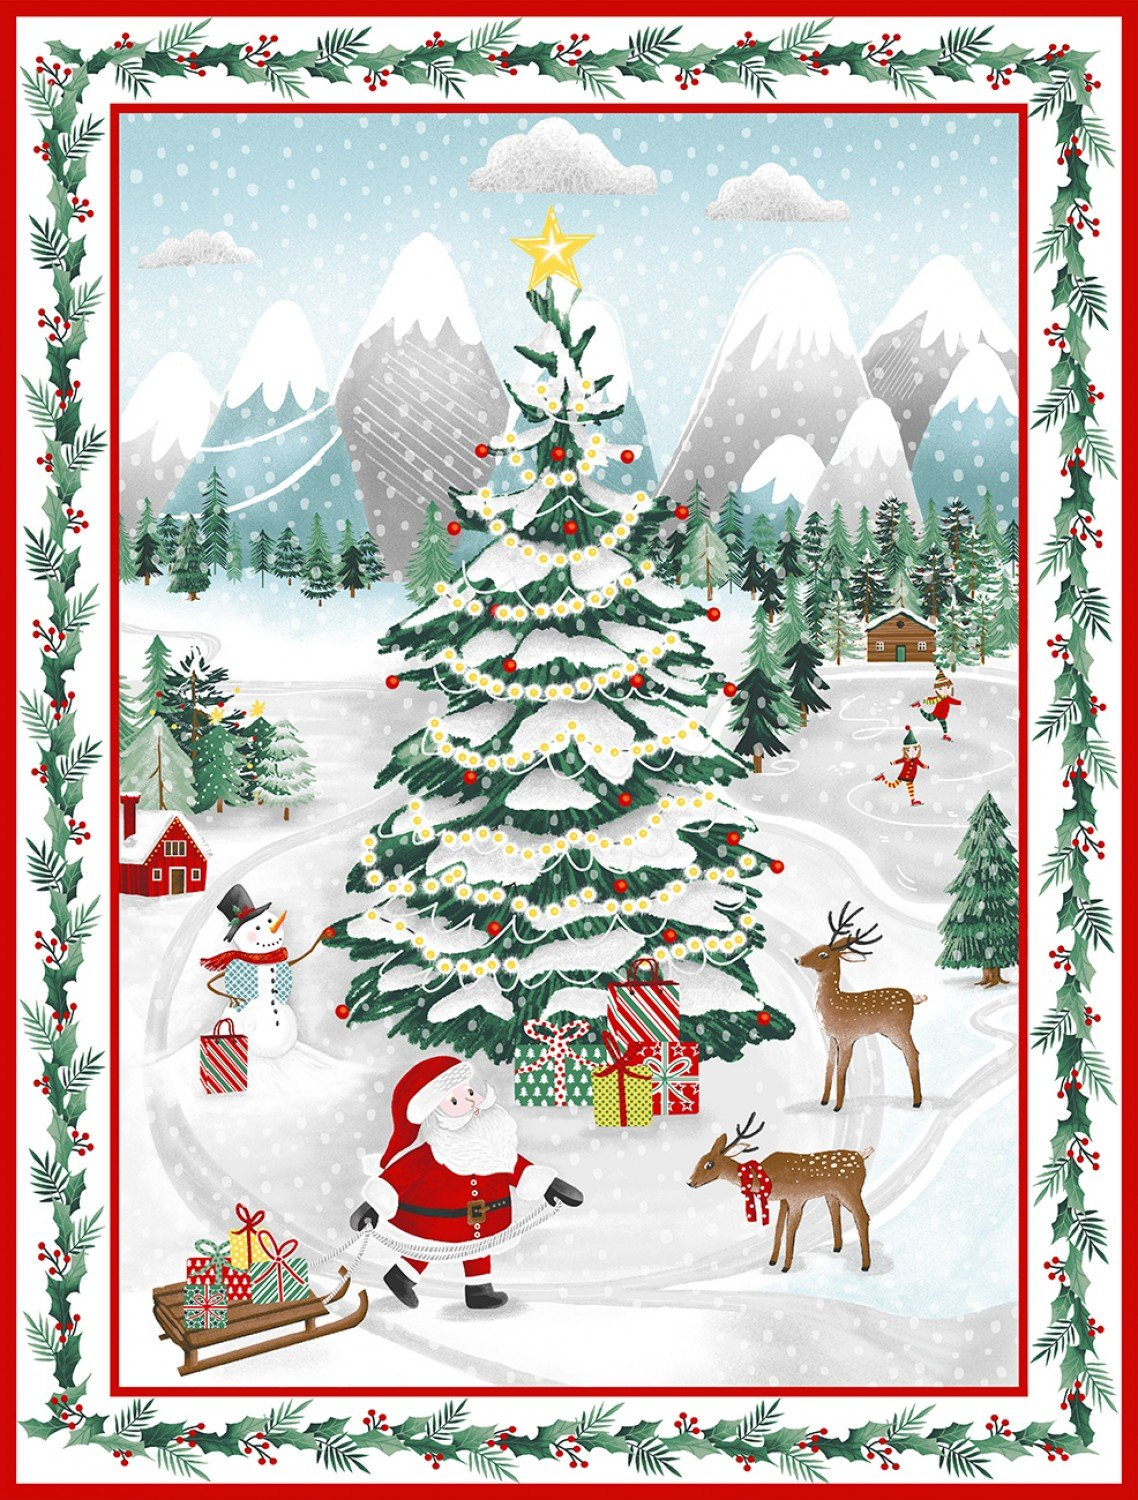 Green Peace and Goodwill Holiday Fabric Panel 36 x 44 Inches